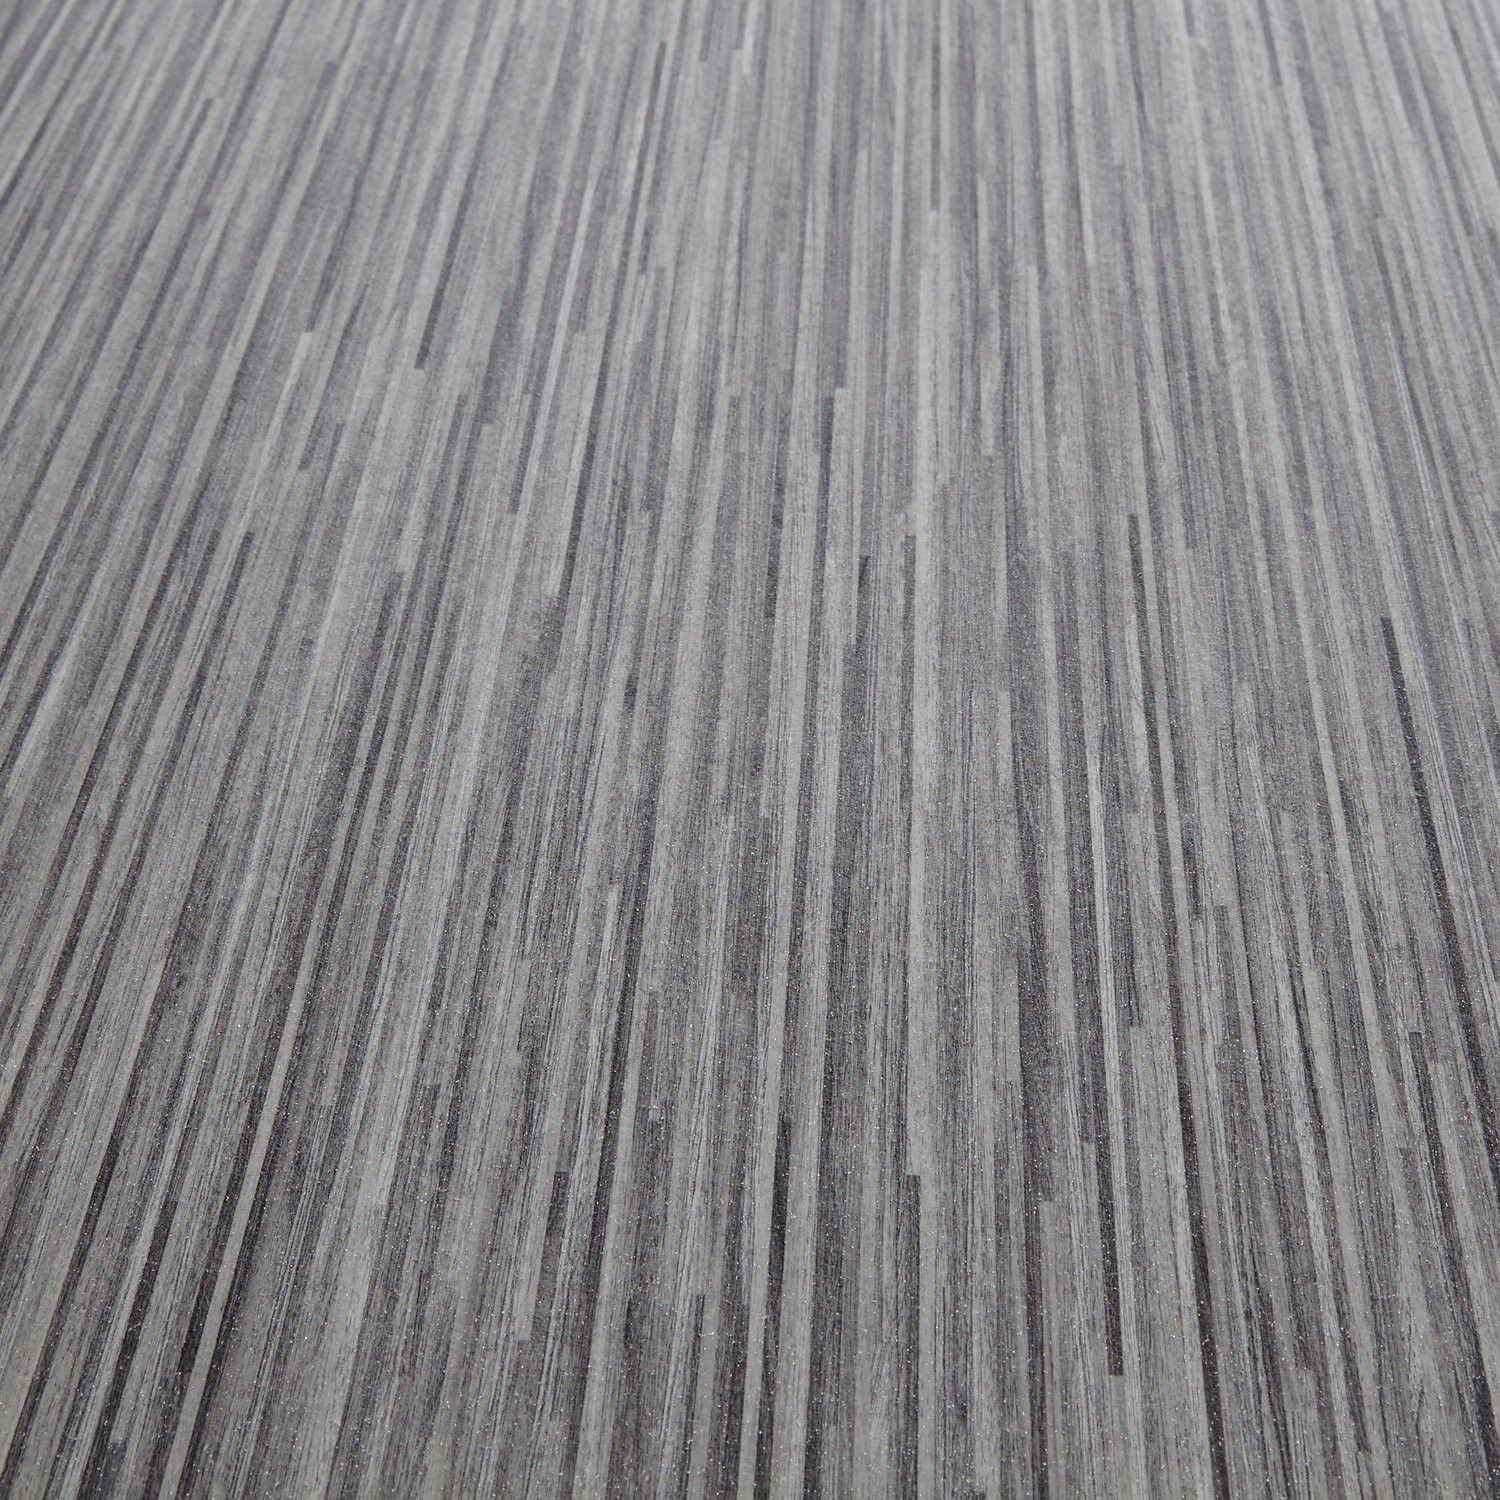 Vinyl Flooring In Kitchen Flooring Superstore Orleans Milan Bathroom Kitchen